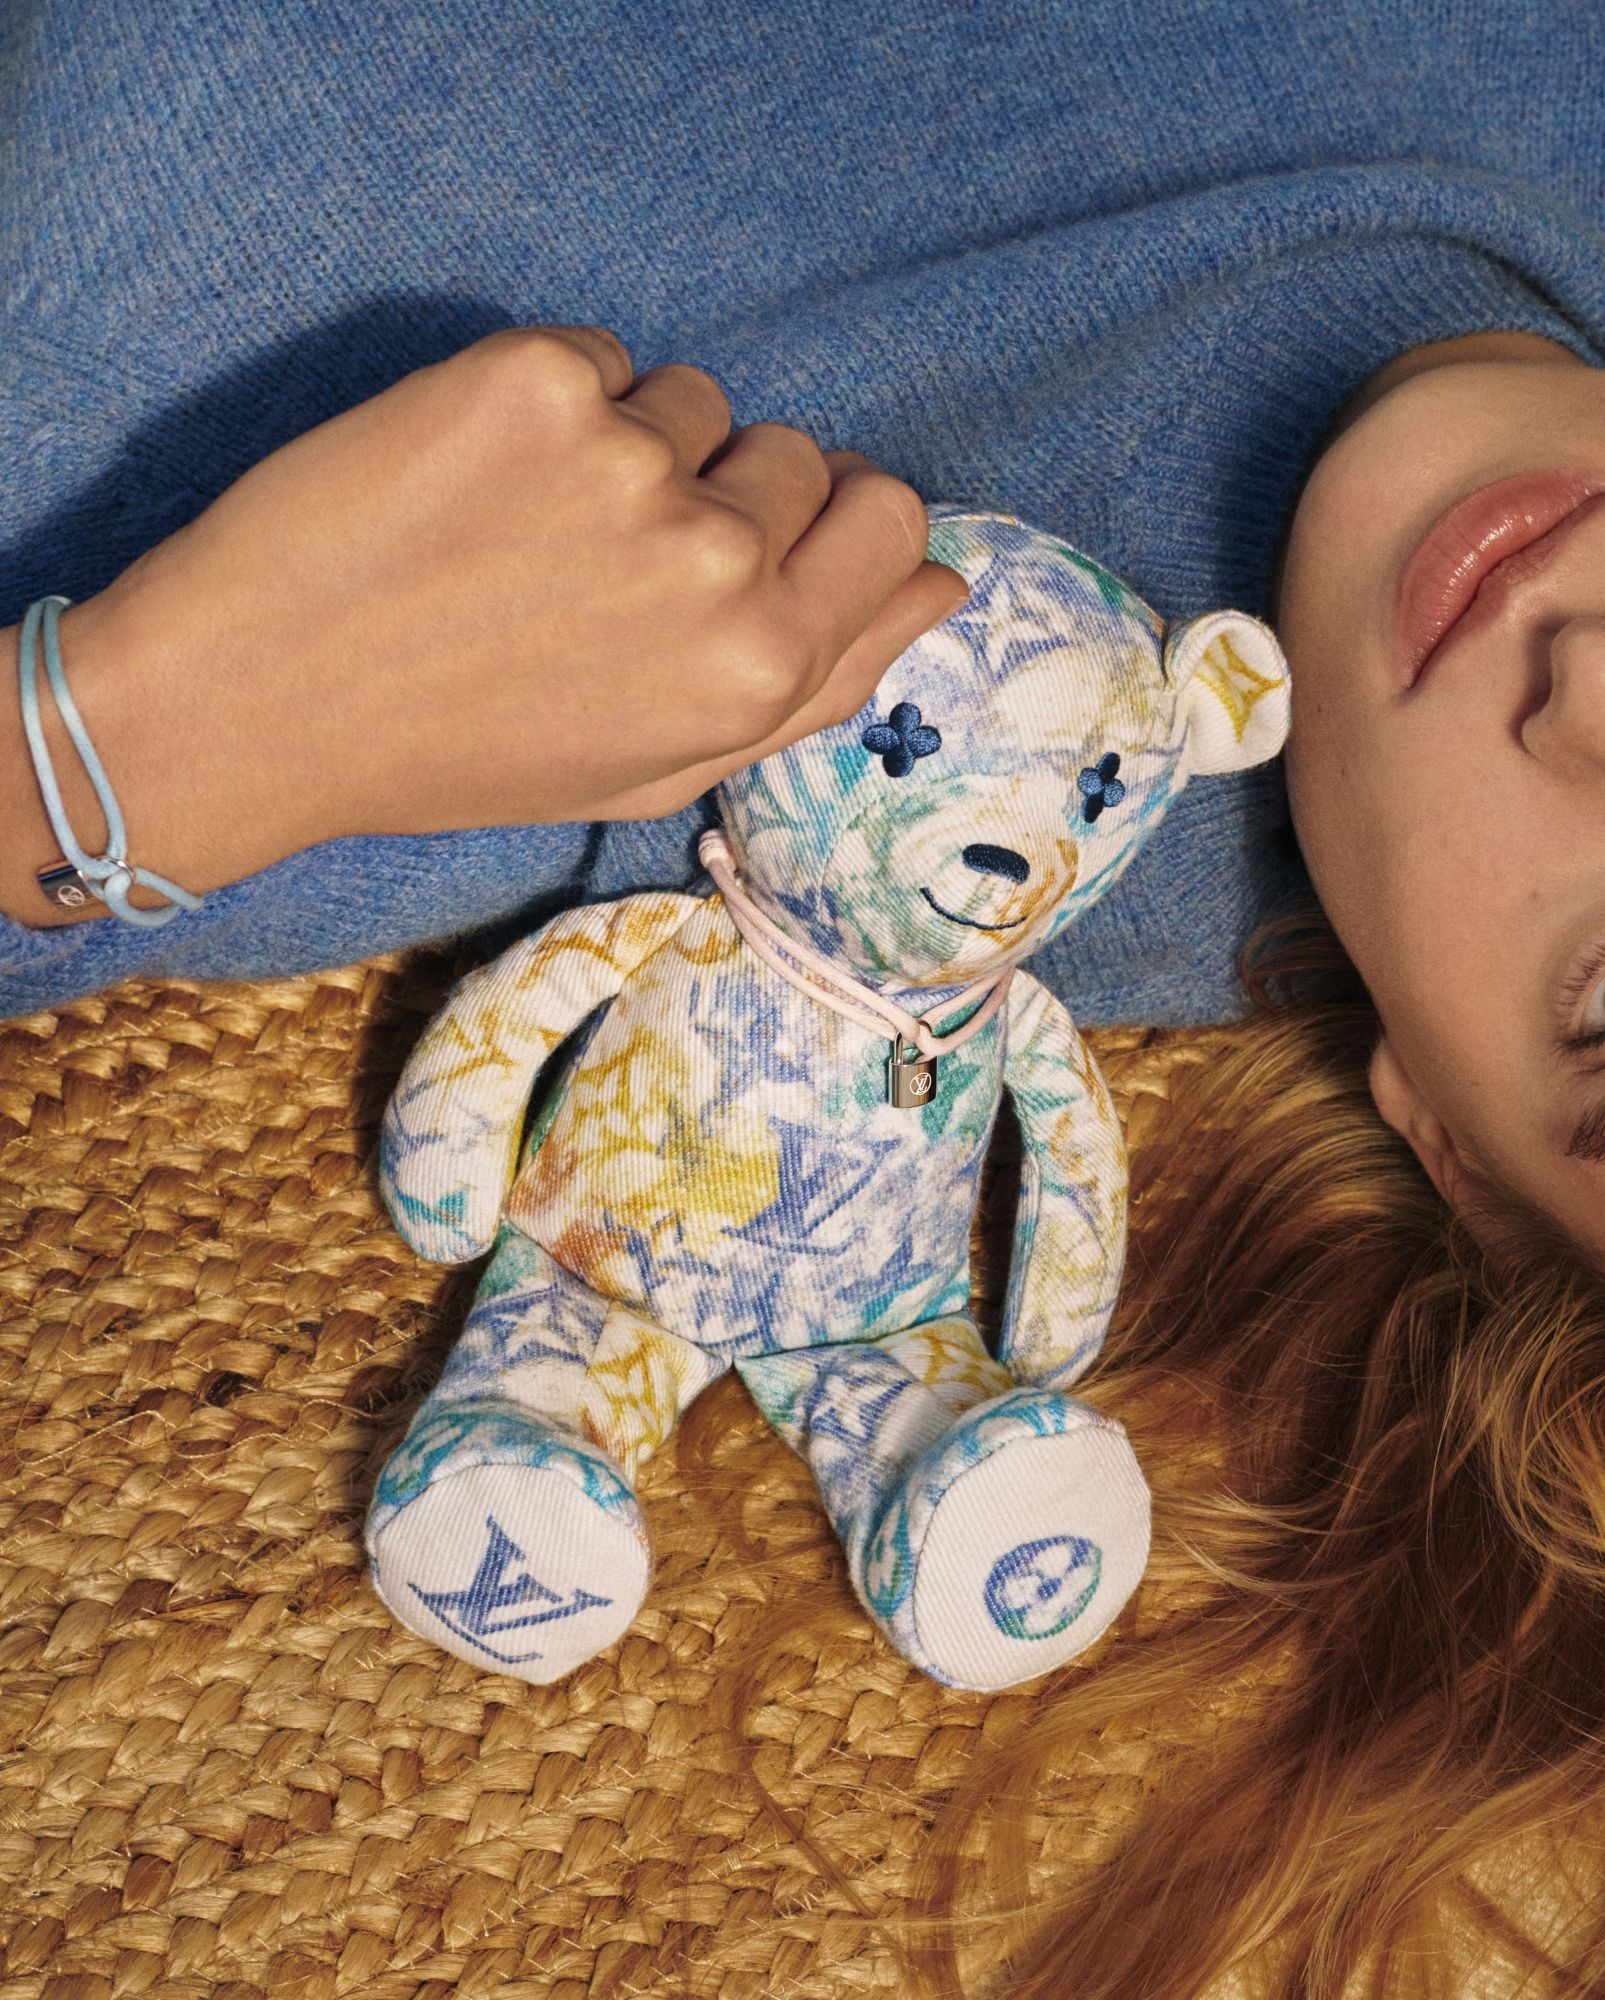 #MakeAPromise: Louis Vuitton Renews Partnership With UNICEF To Save At-Risk Youth